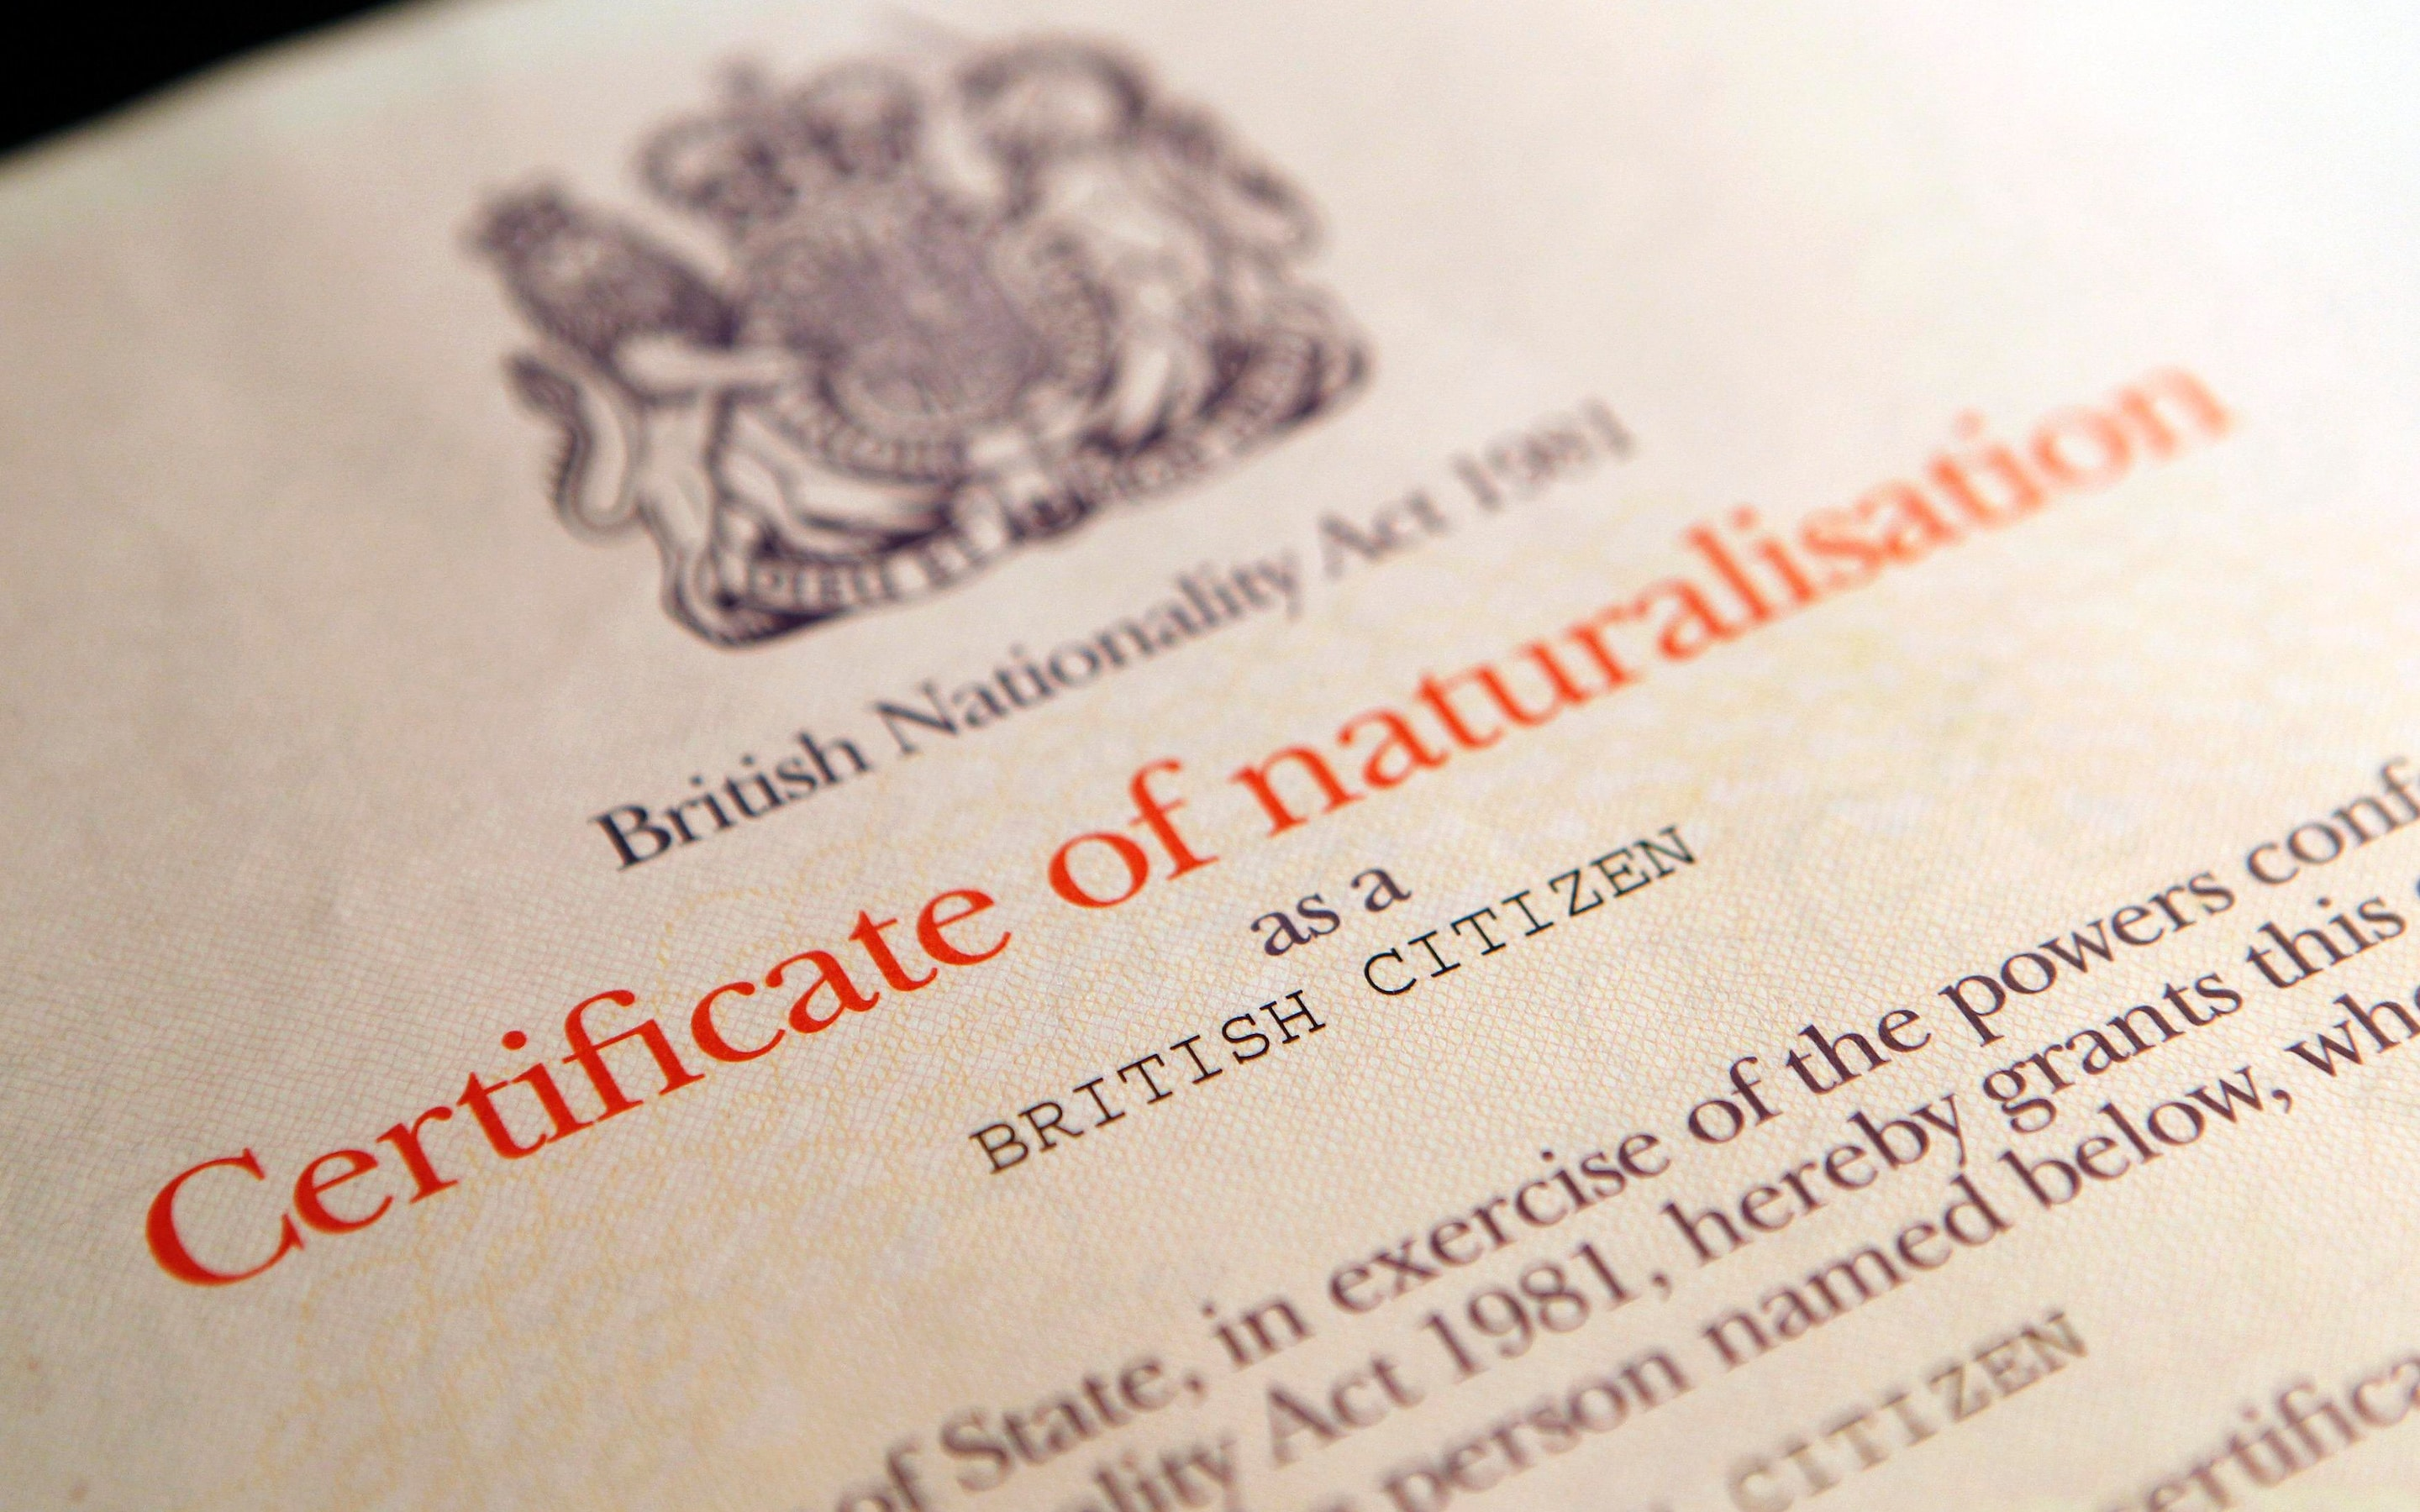 British naturalisation certificate.